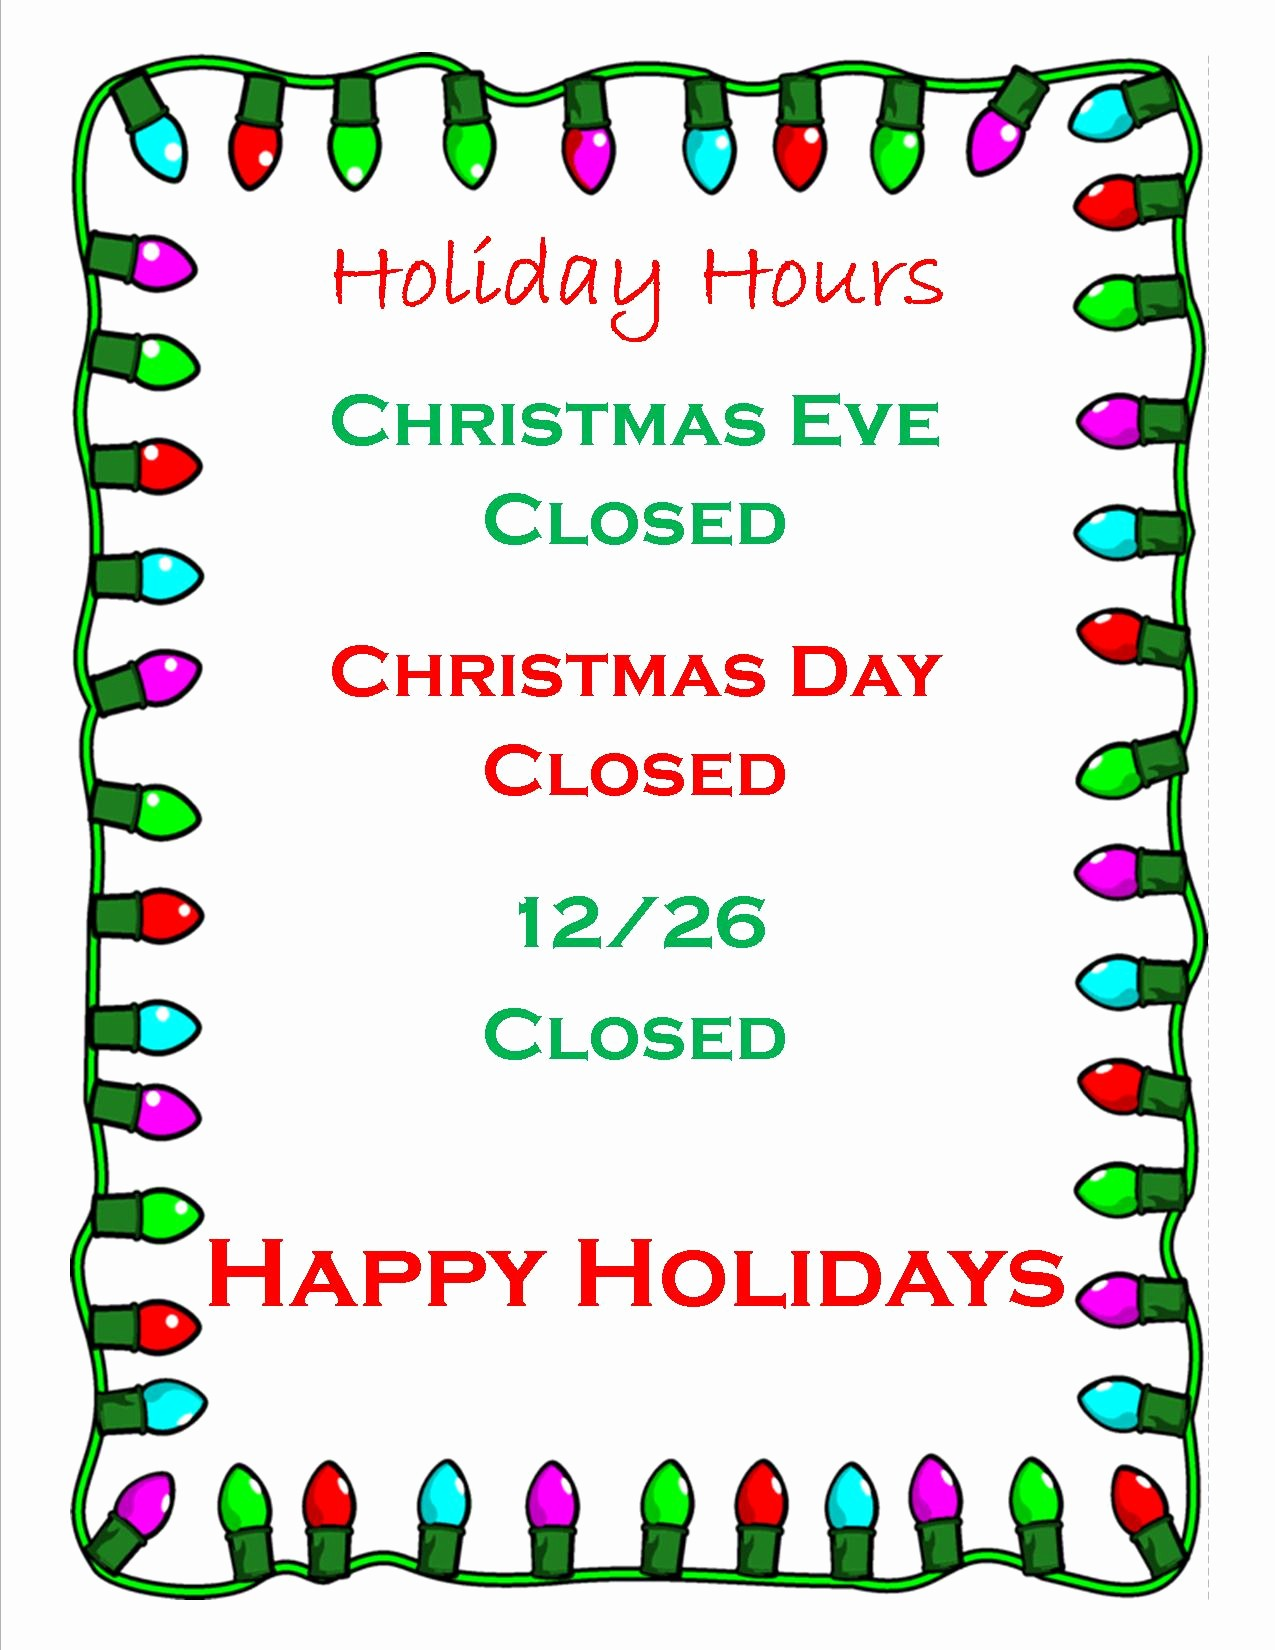 Office Closed for Holiday Sign Luxury Business Fice Closed for Holidays Keizer Fire District